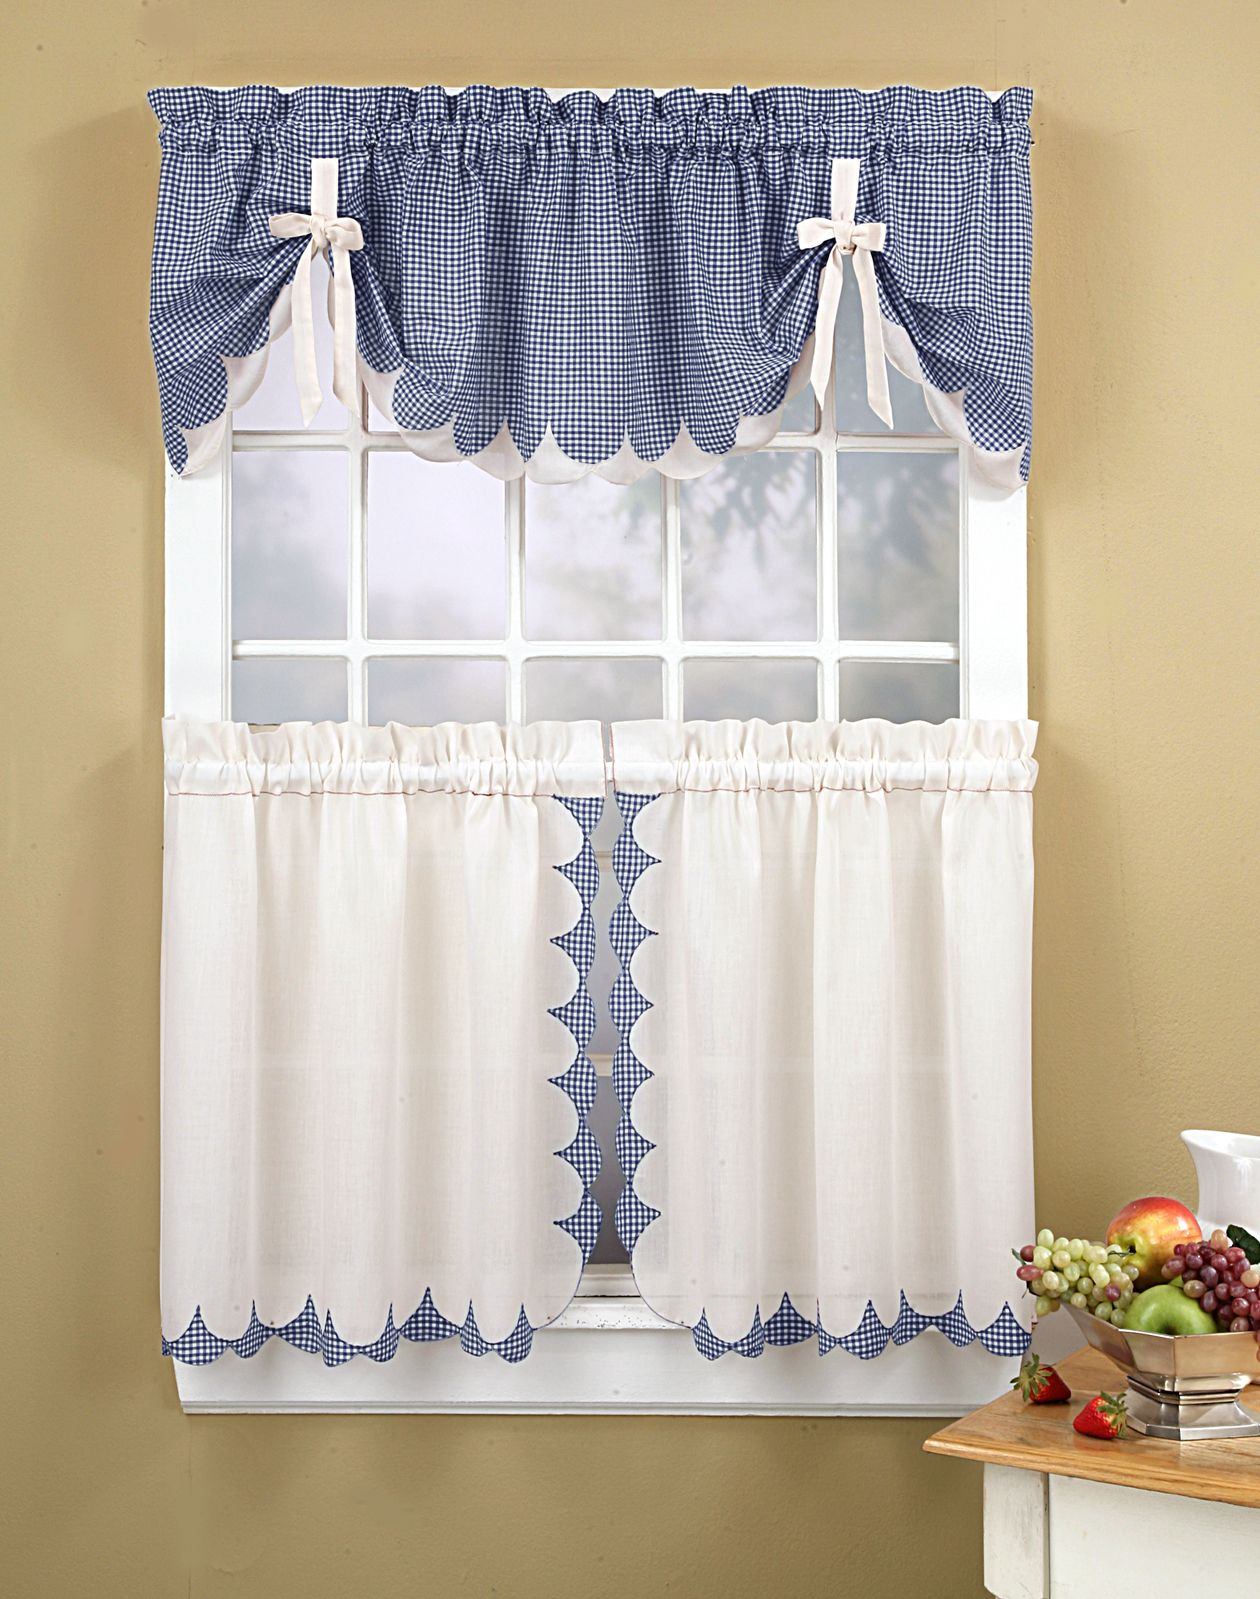 Kitchen Curtains Tabitha 3 Piece Kitchen Curtain Tier Set